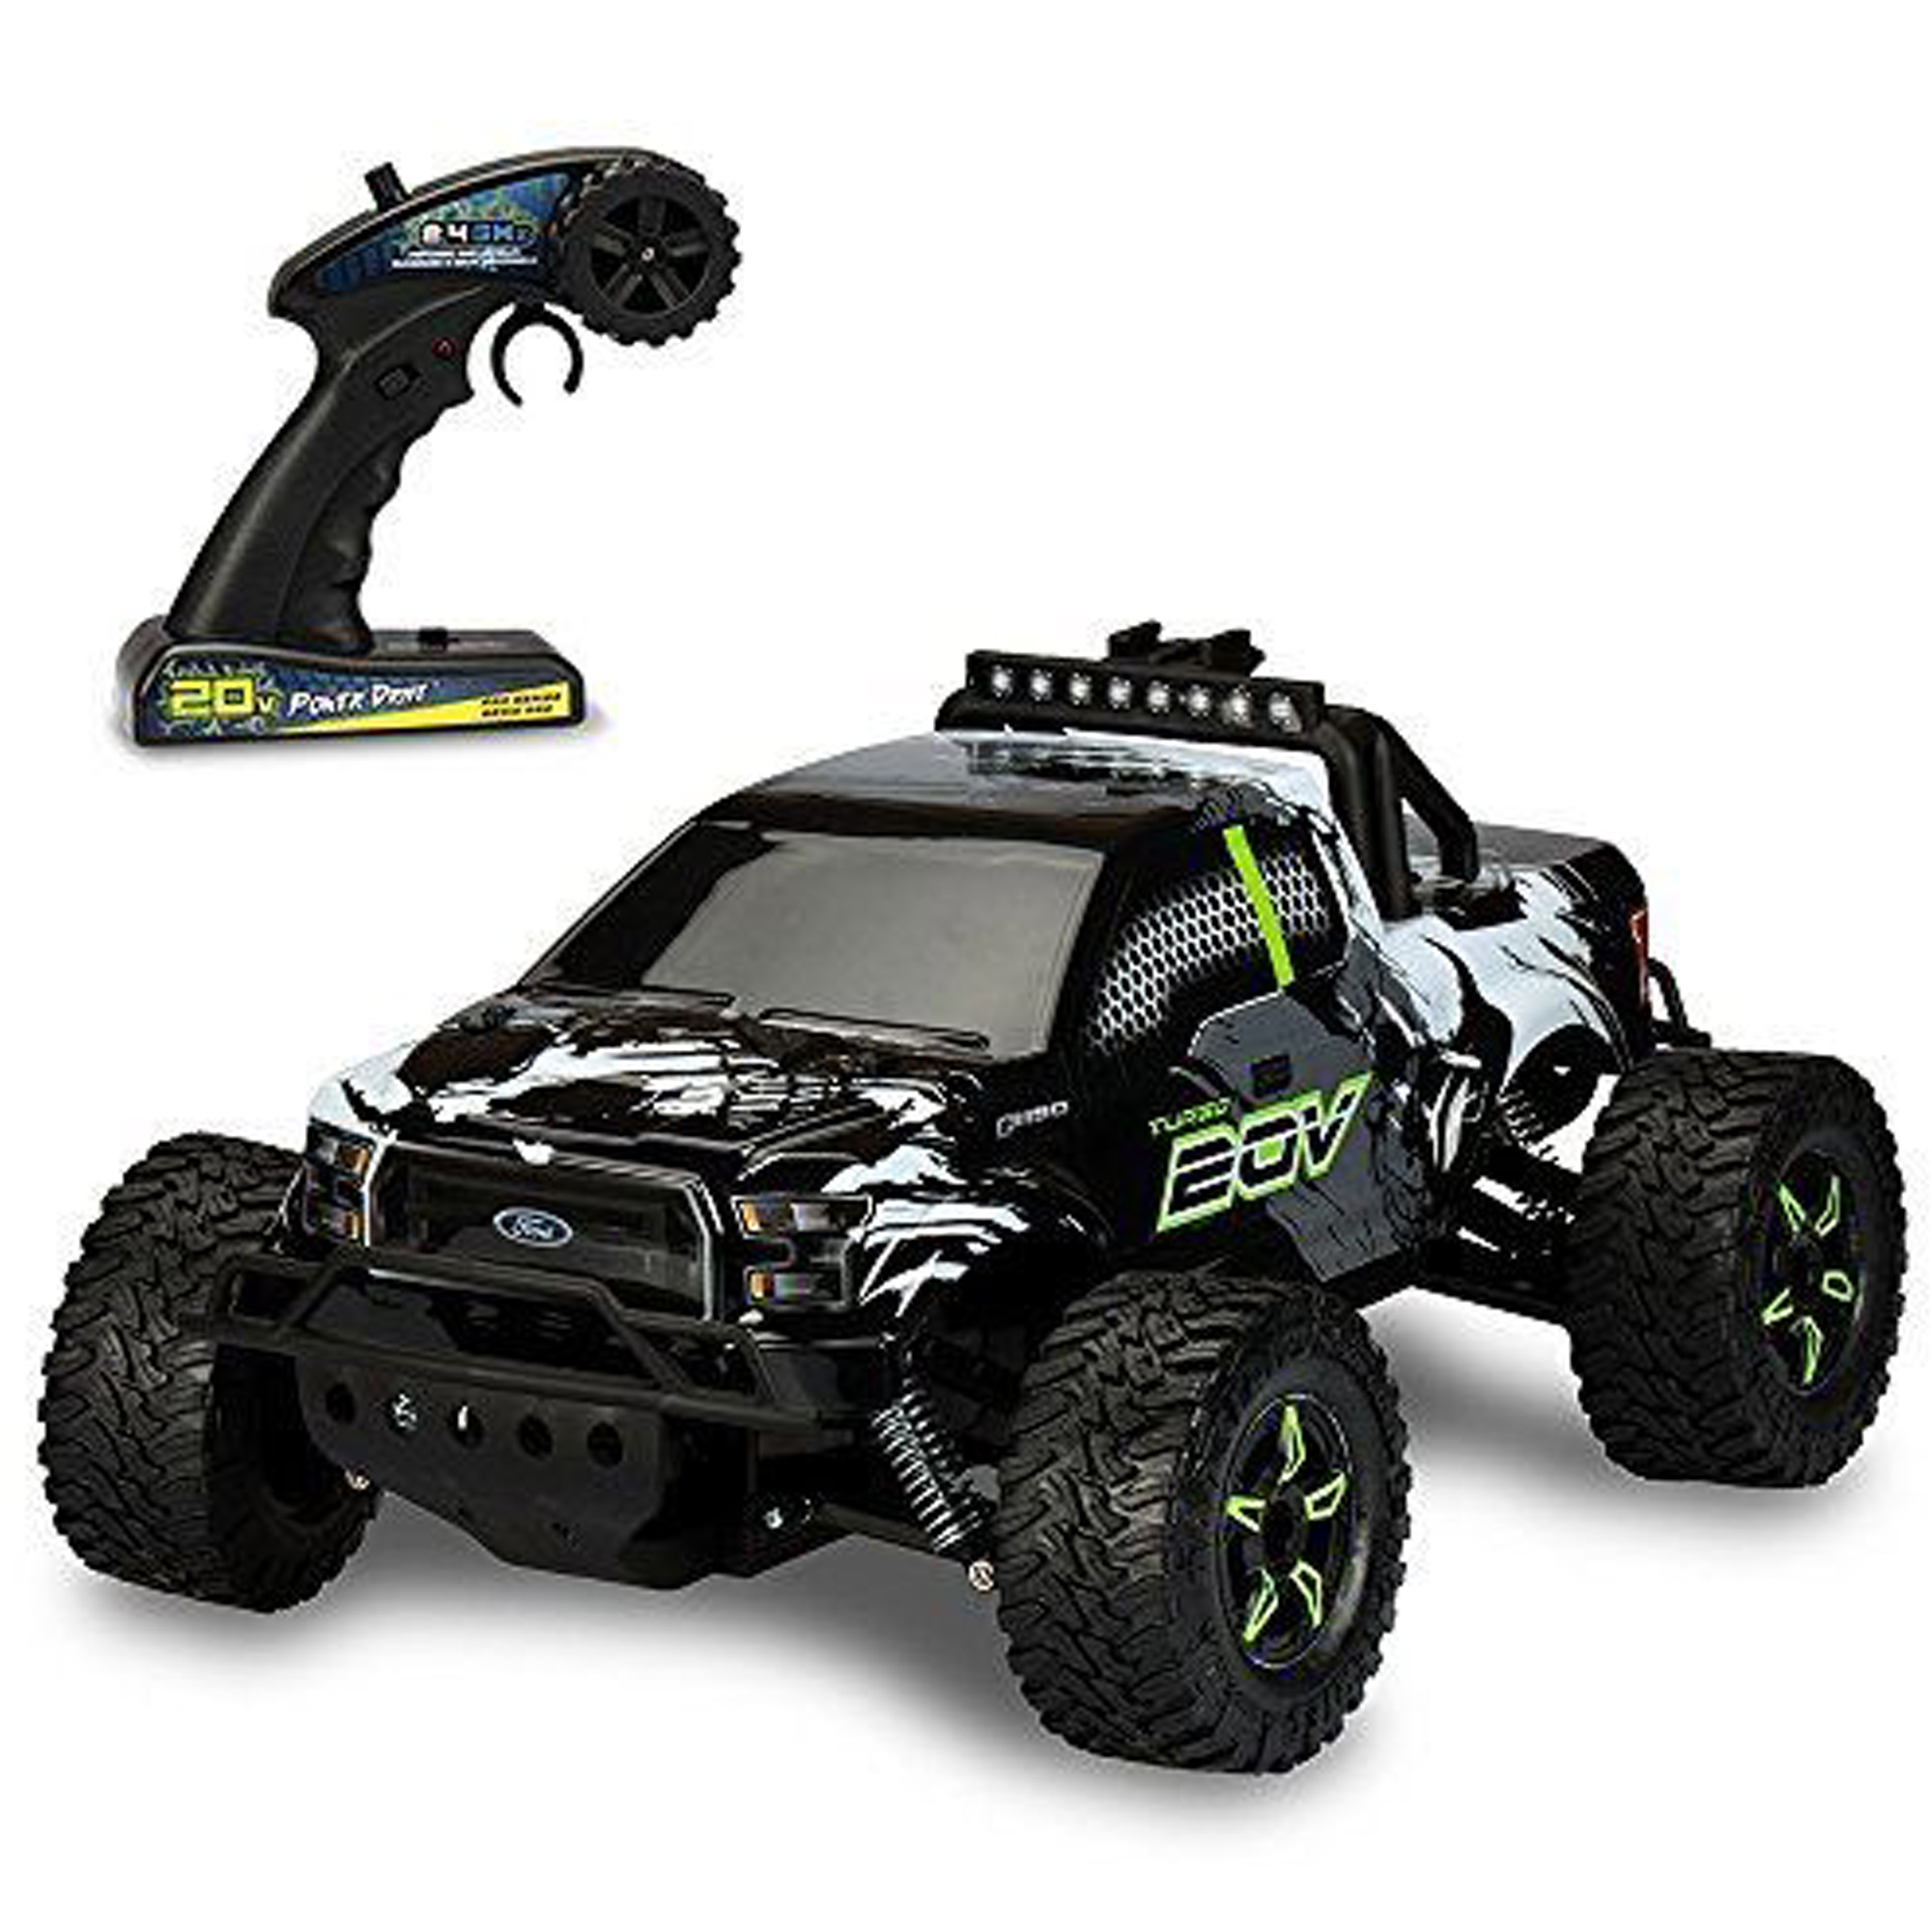 Kid Galaxy Ford F150 Remote Control Truck. Fast 30 MPH All Terrain Off-road RC Car - Walmart.com